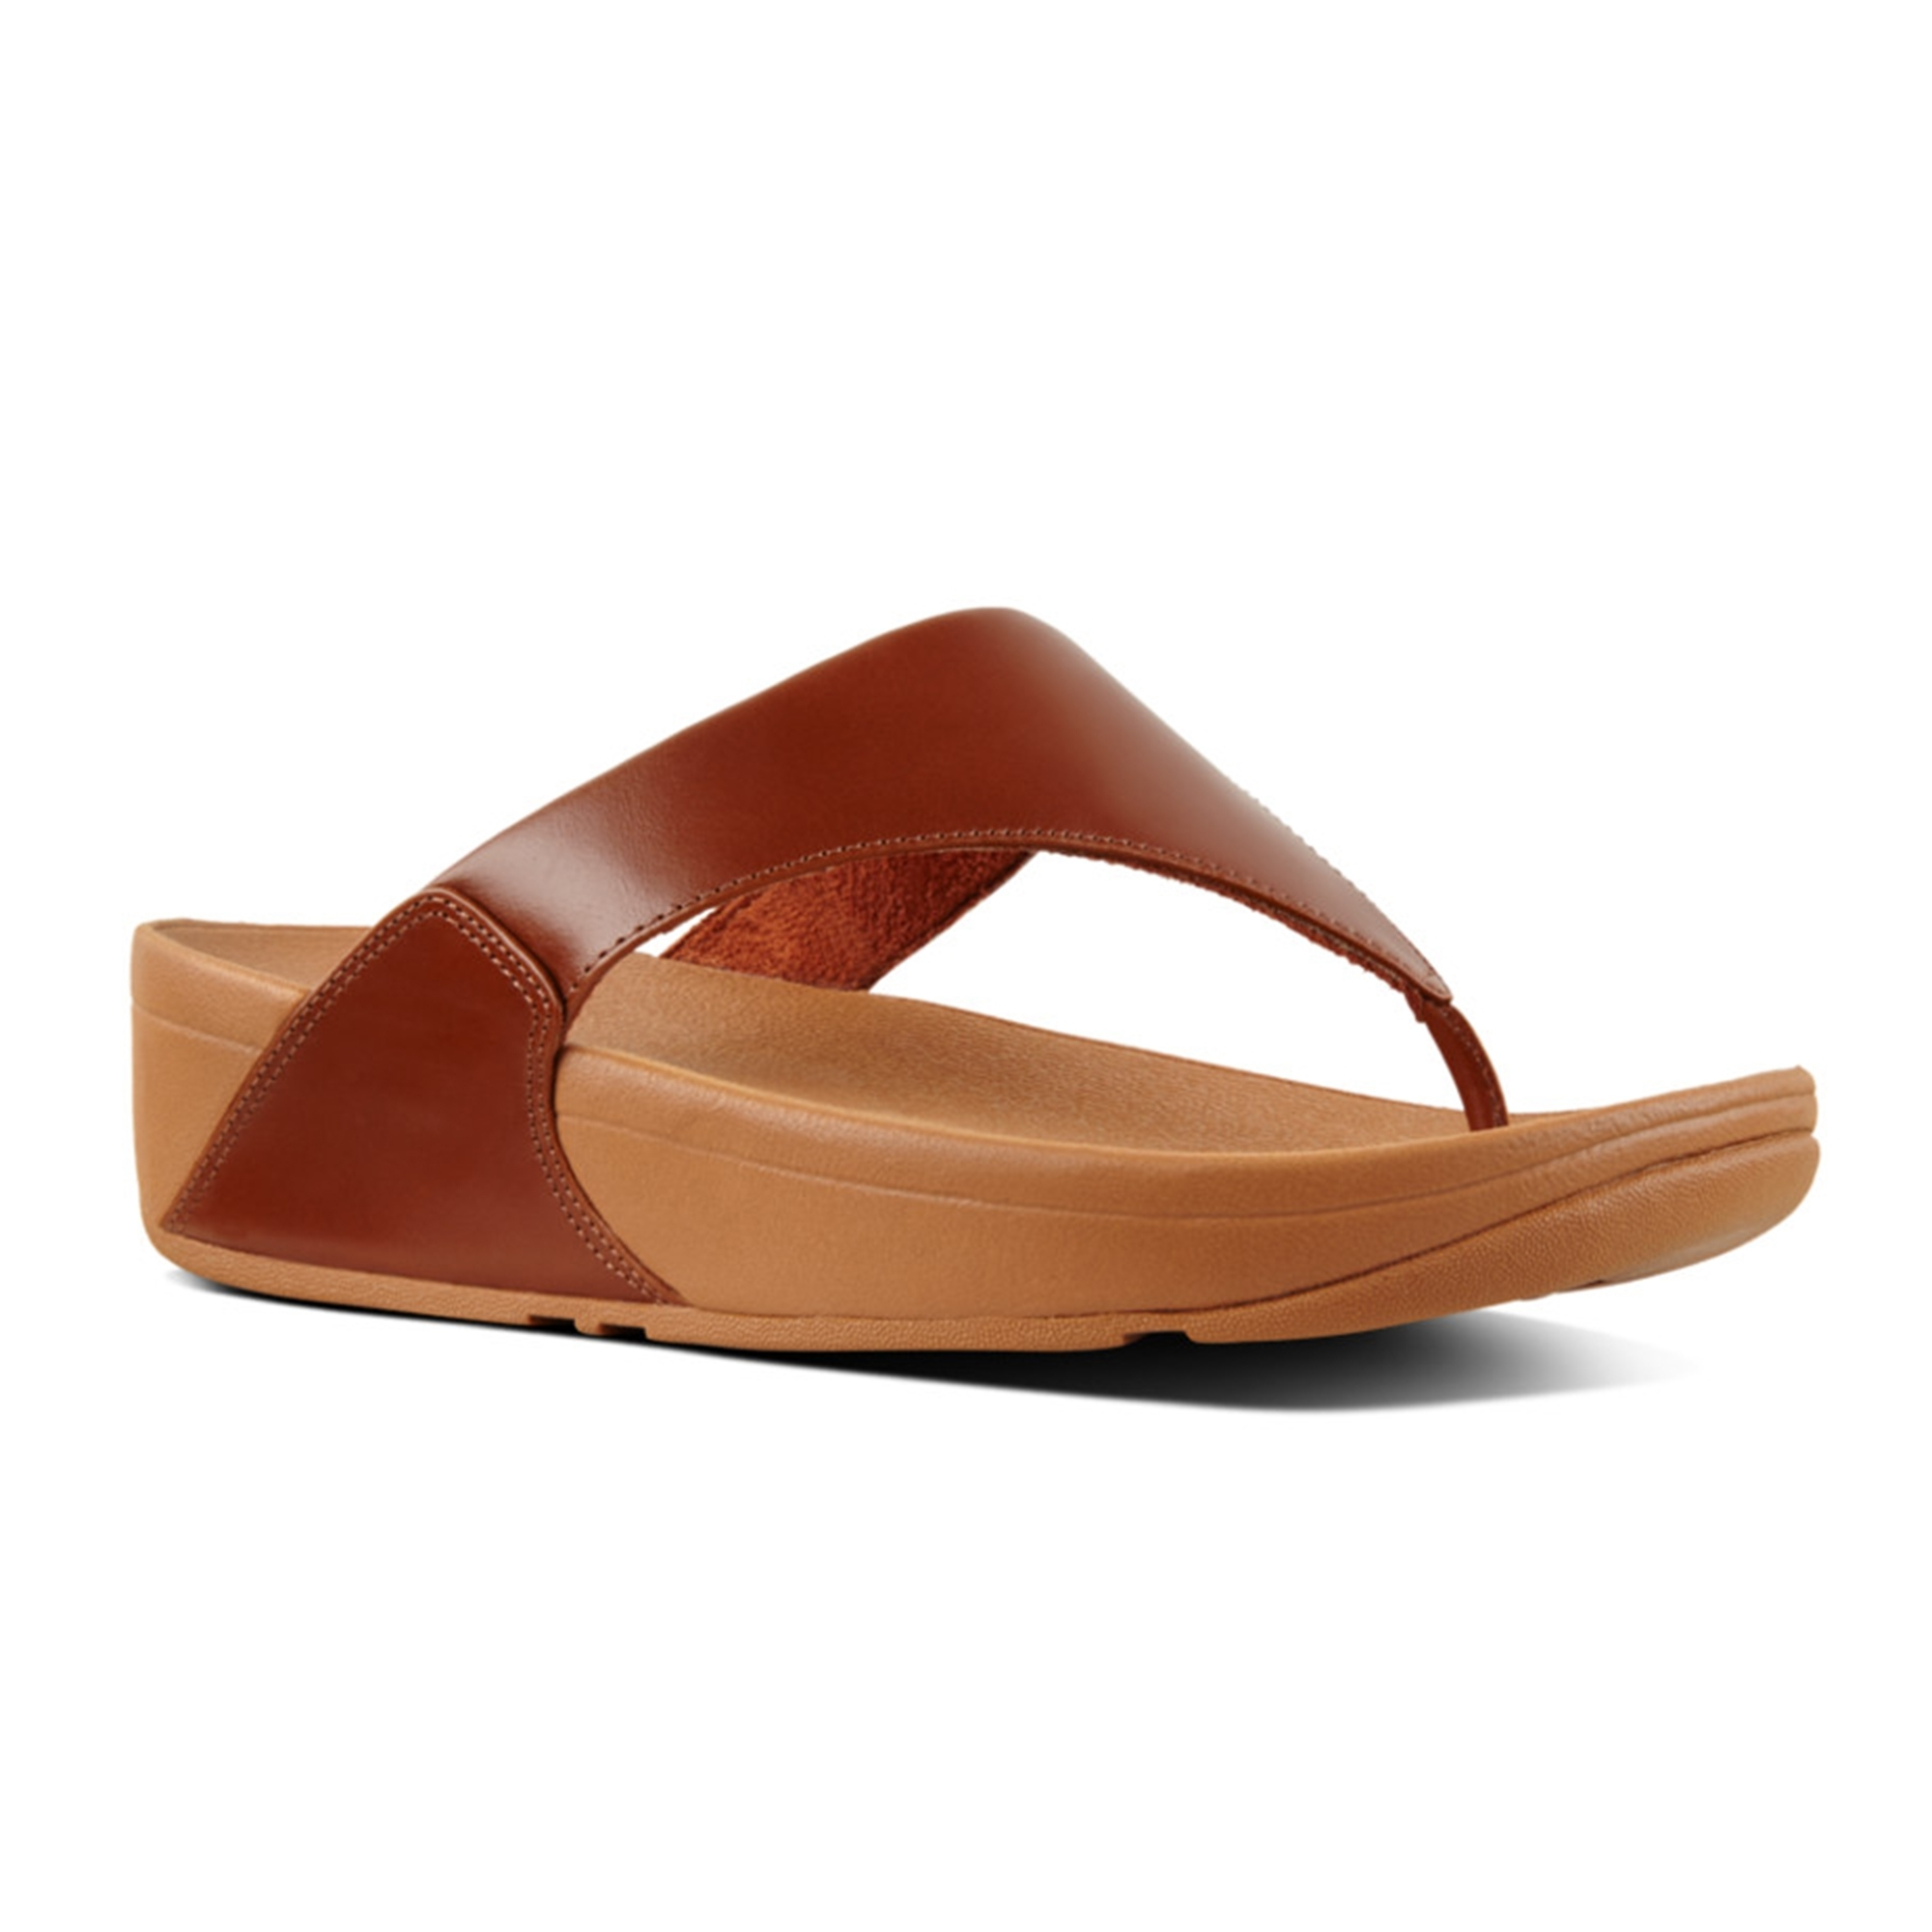 3a08b3929 FitFlop™ LULU™ Ladies Leather Comfy Toe Post Sandals Caramel